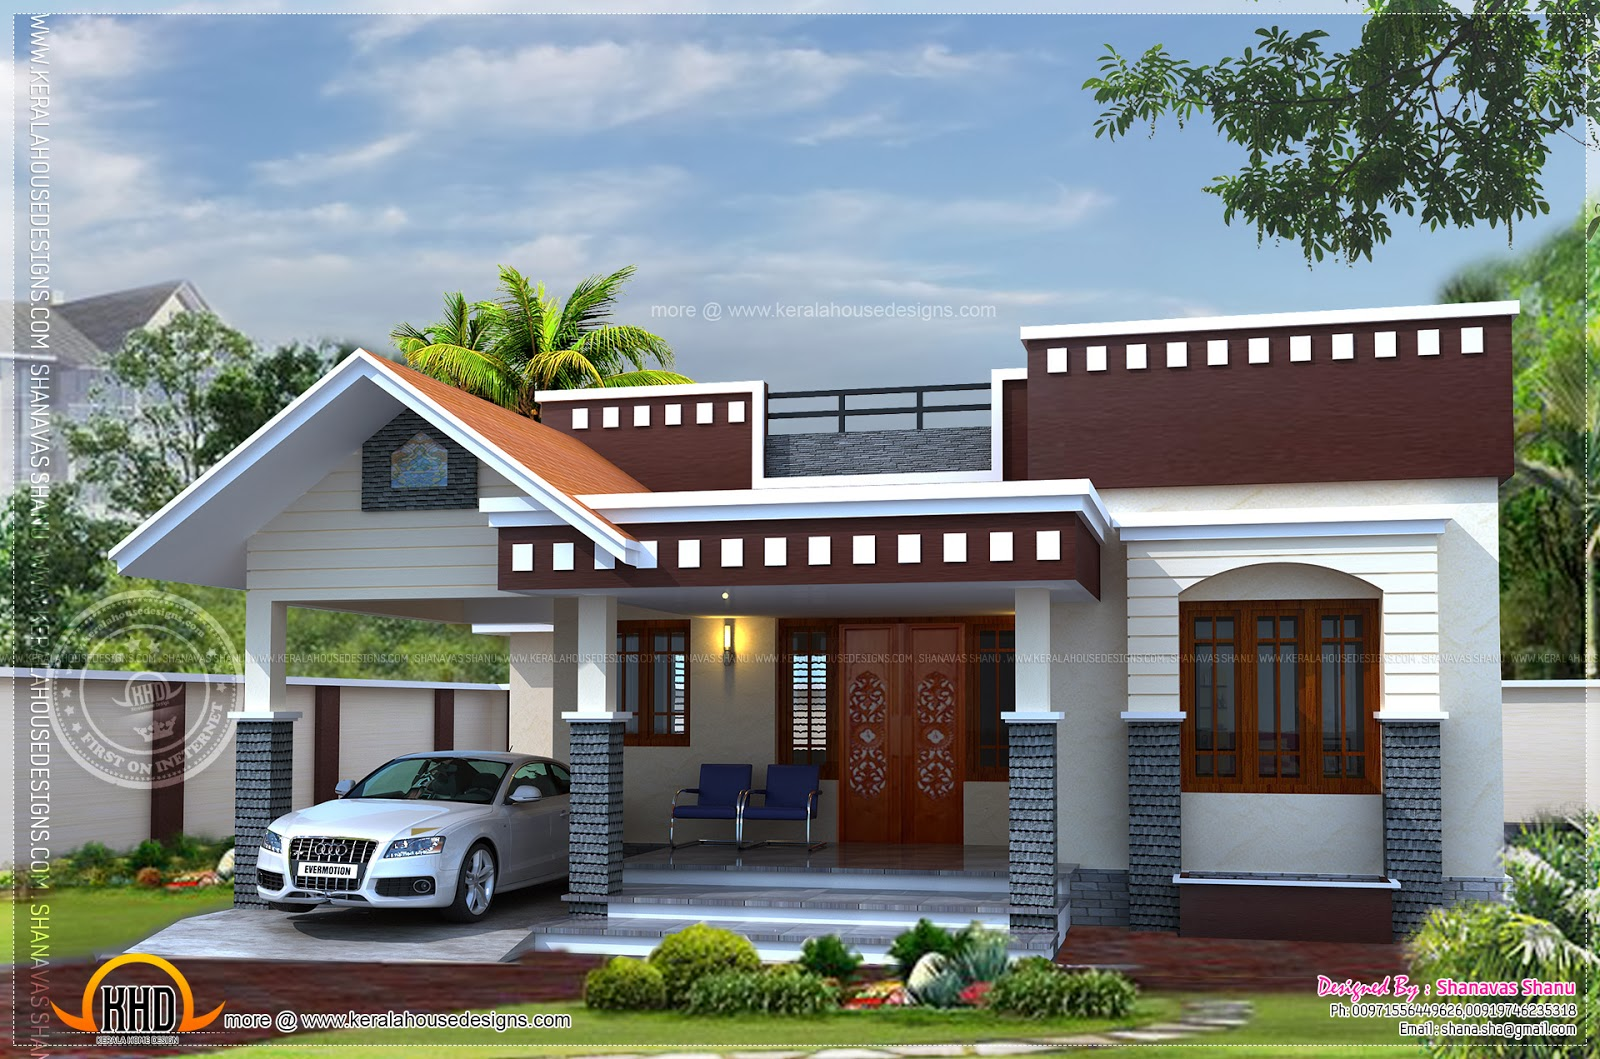 Home plan of small house kerala home design and floor plans for Small home design in kerala